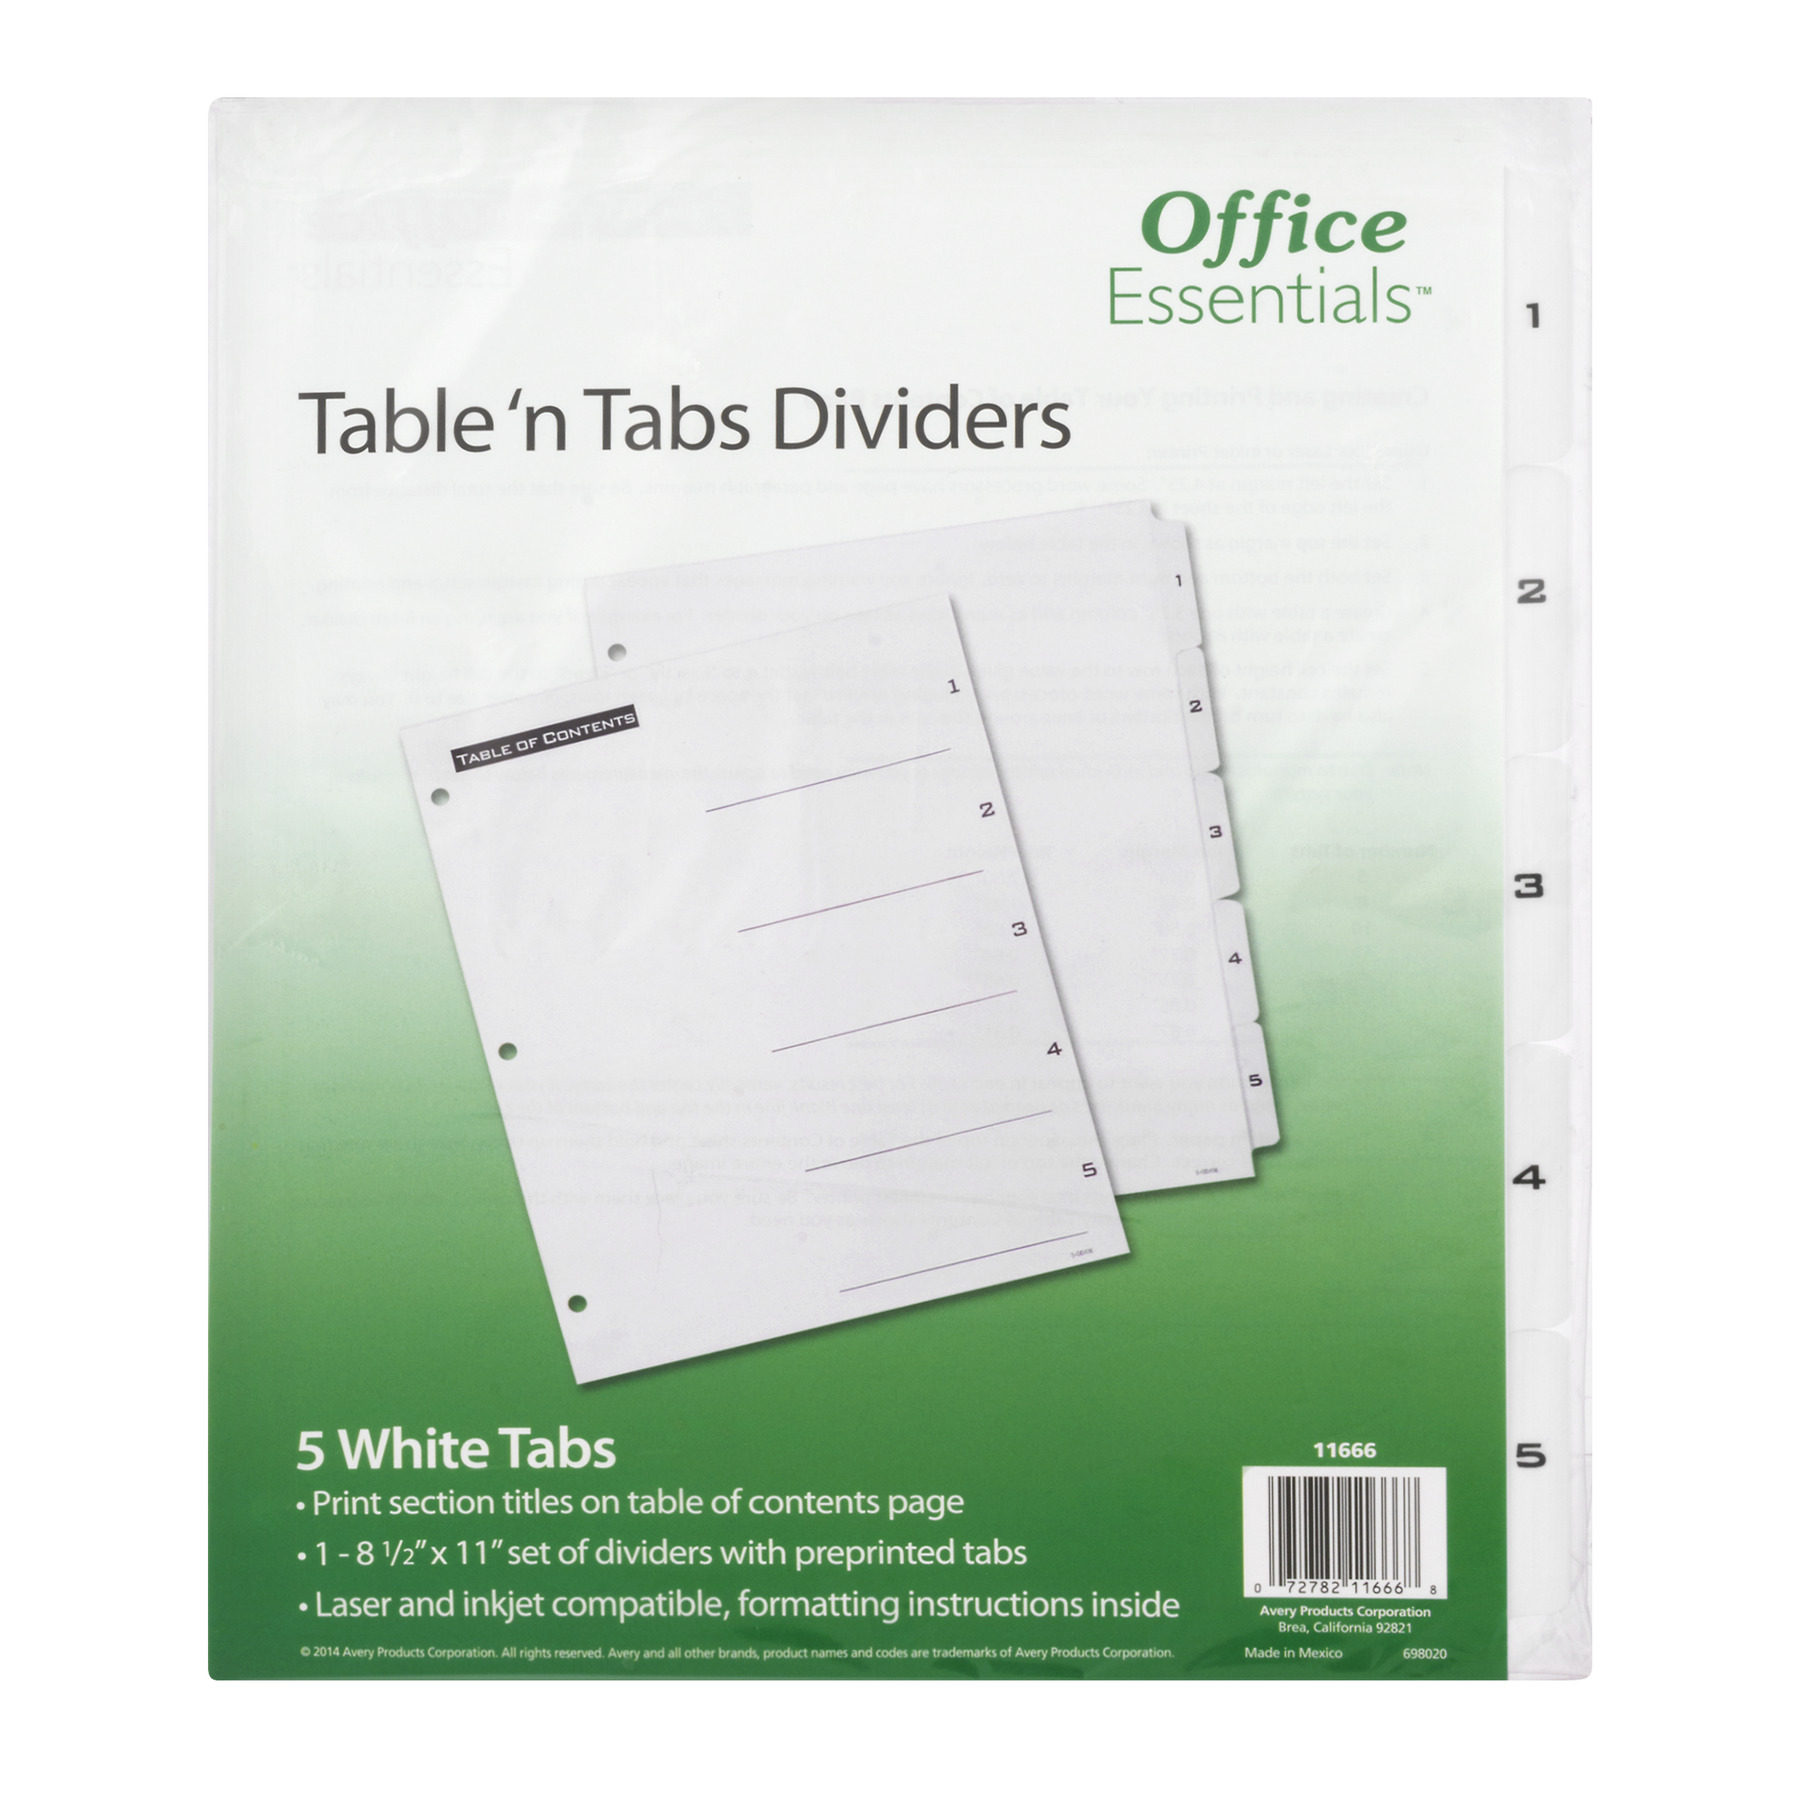 Office Essentials Table 'n Tabs Dividers, 1.0 CT